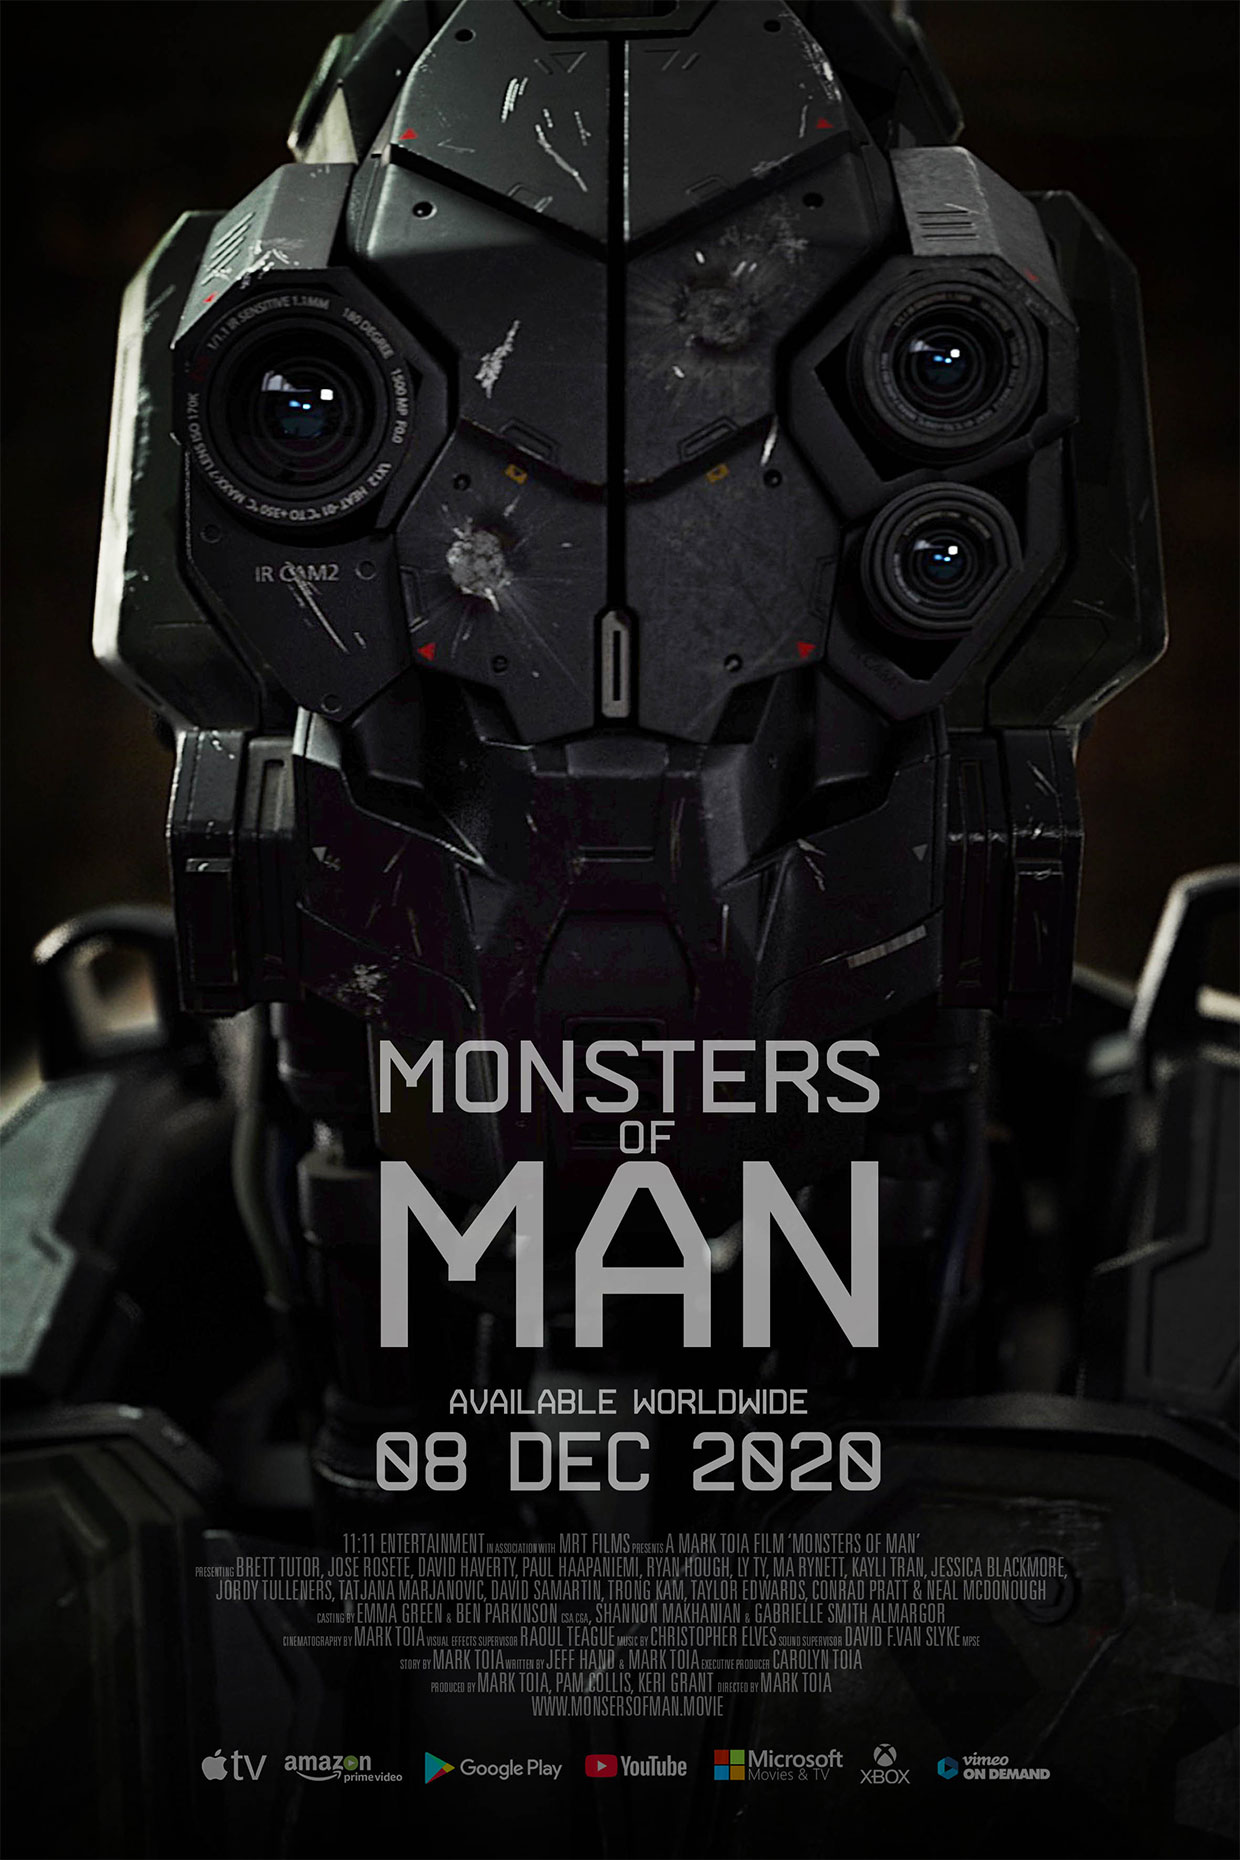 Monsters of Man (Trailer)